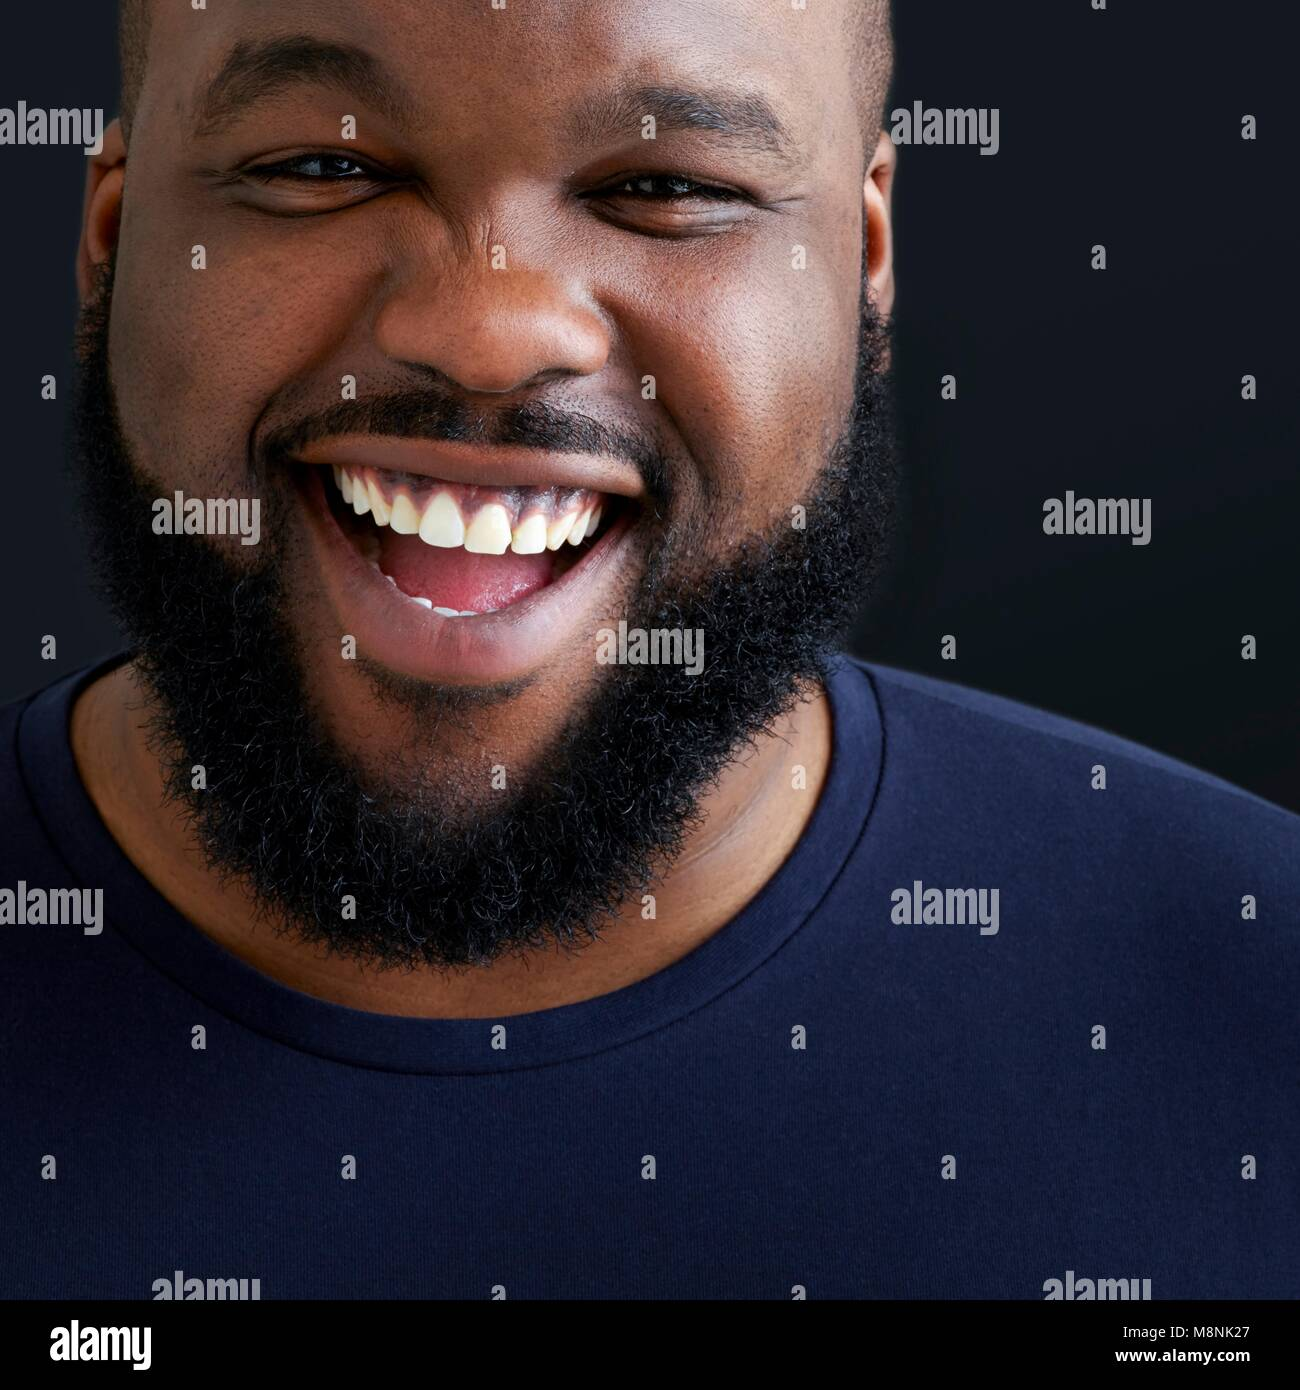 Close up of man laughing and smiling towards camera. Stock Photo